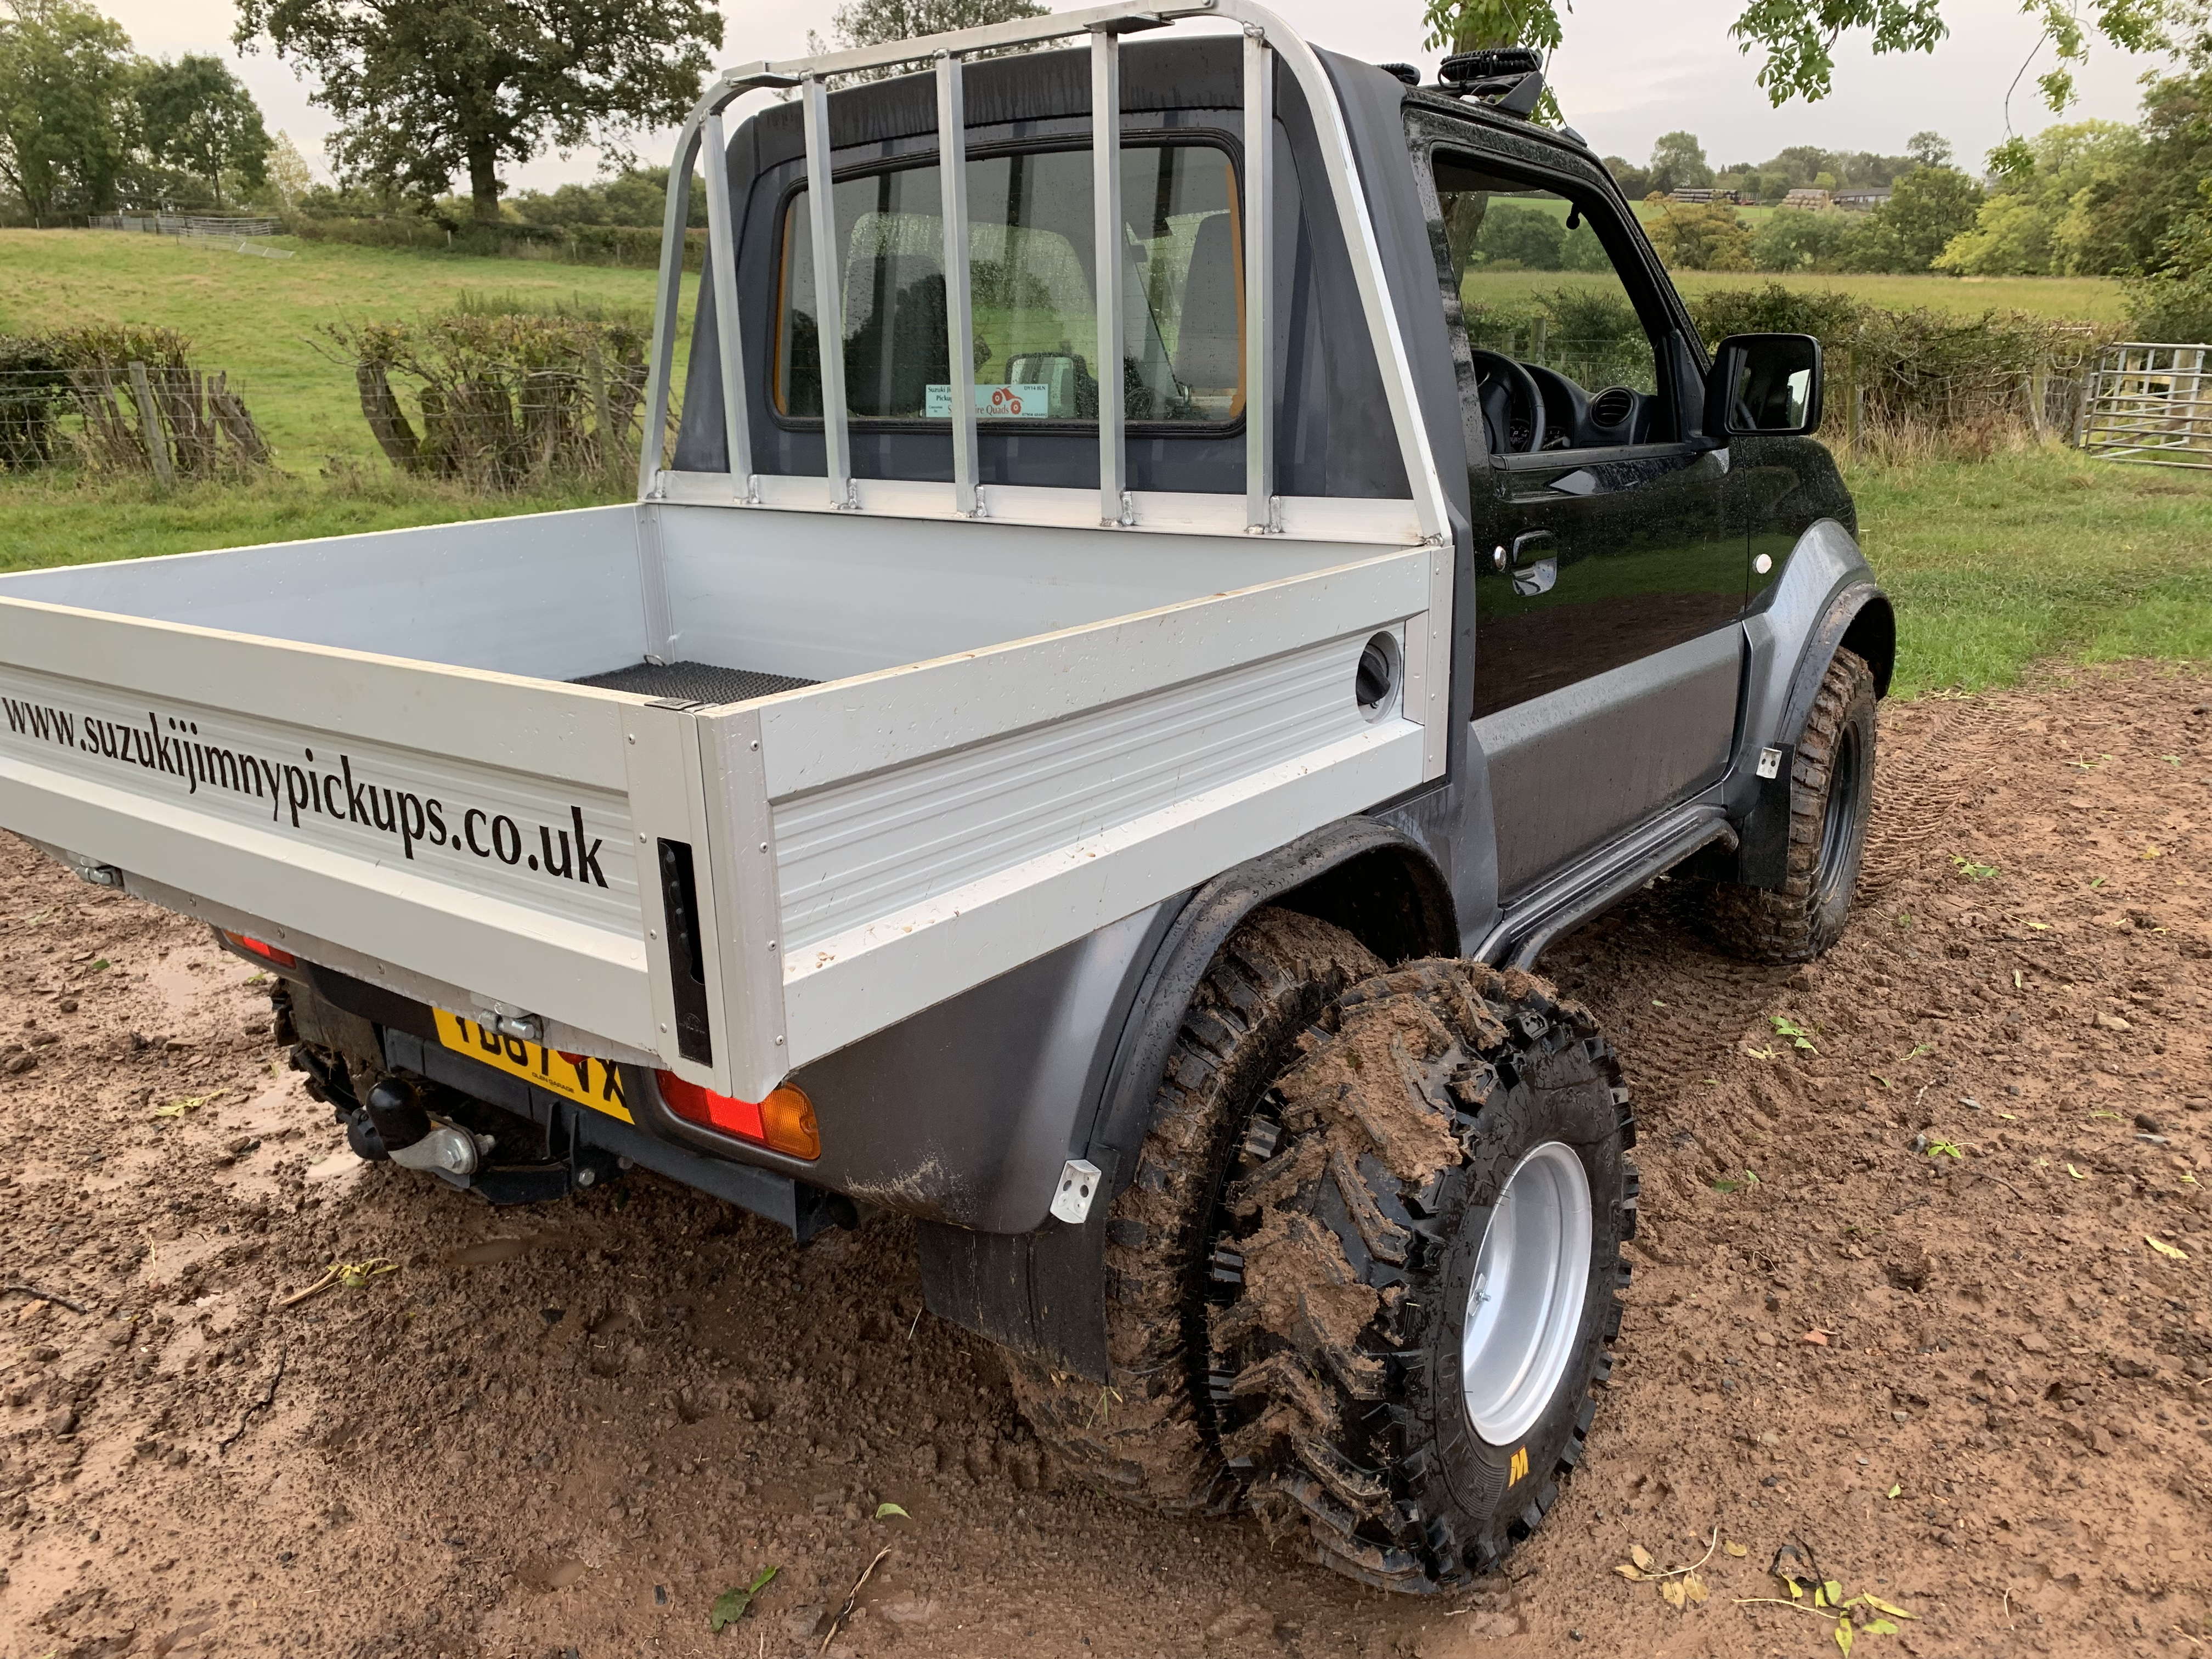 Suzuki Jimny pickup with dual wheel system fitted.